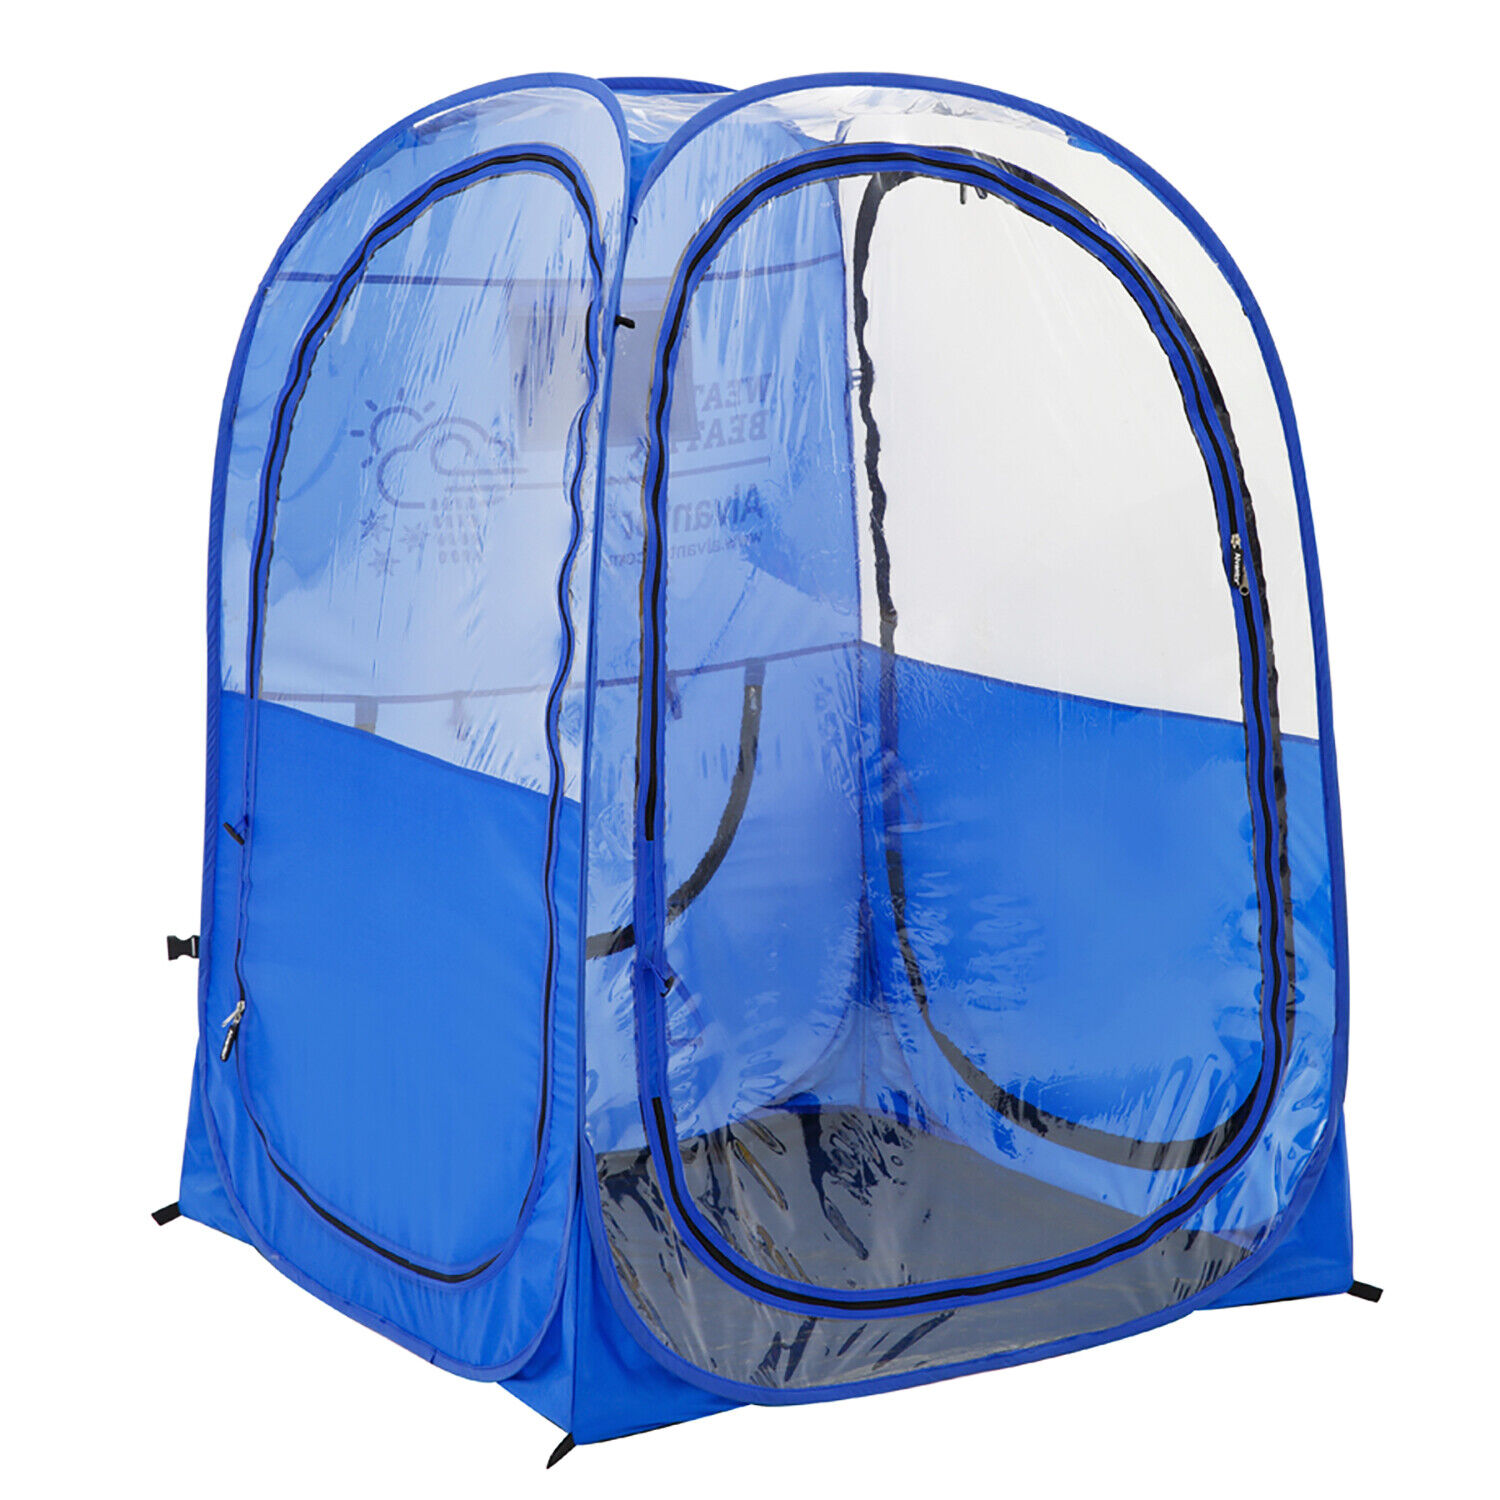 Alvantor Sports Cochepa clima vainas Camping Tiendas De Campaña Pop Up Impermeable Refugio patente